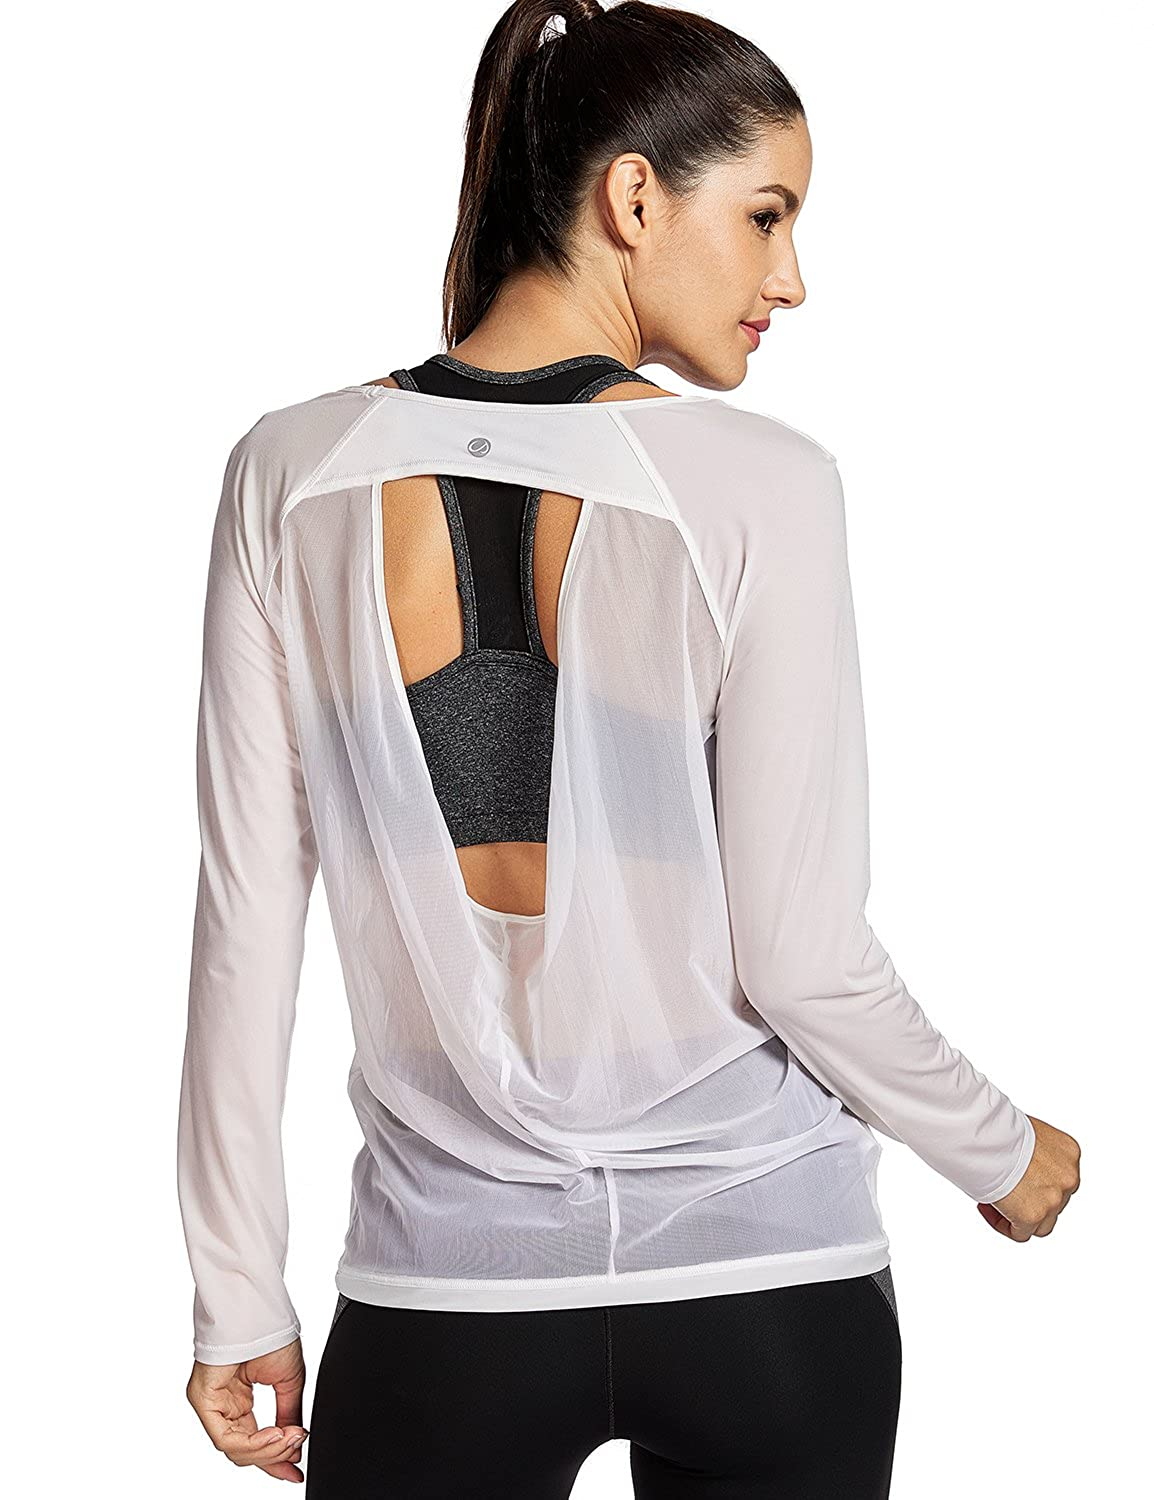 CRZ YOGA Women's Long Sleeve Mesh Workout Yoga Sports T-Shirt Tops